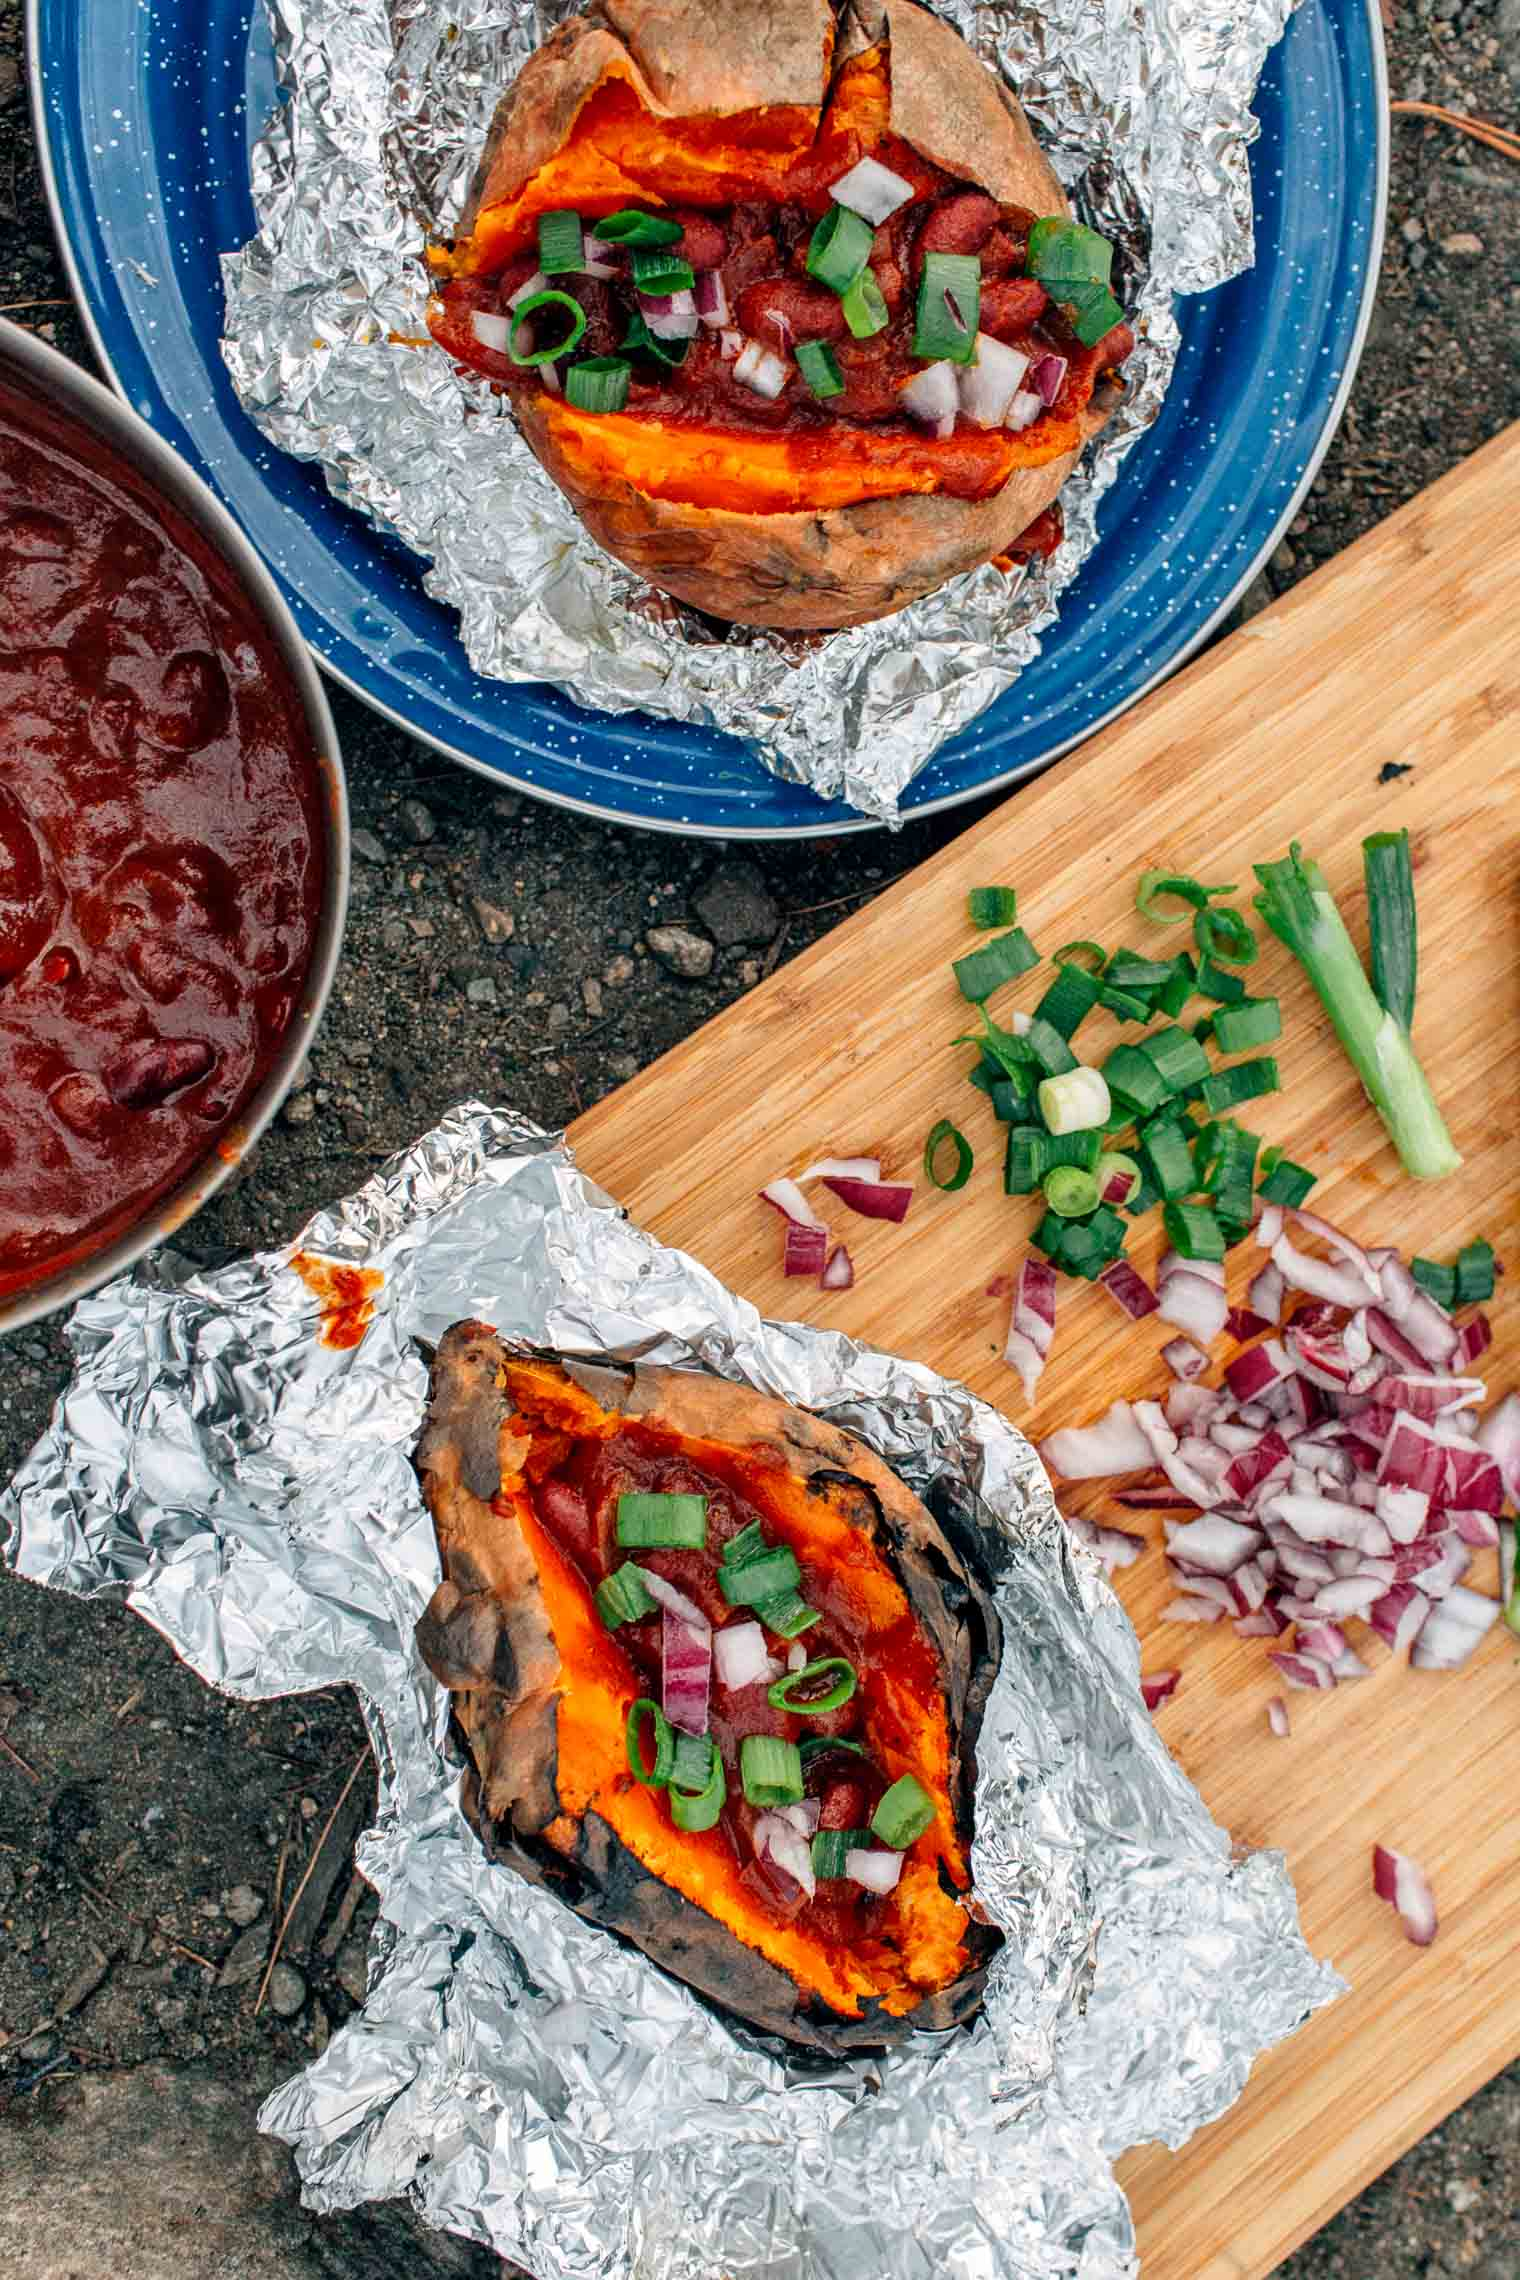 52 Incredibly Delicious Camping Food Ideas Fresh Off The Grid